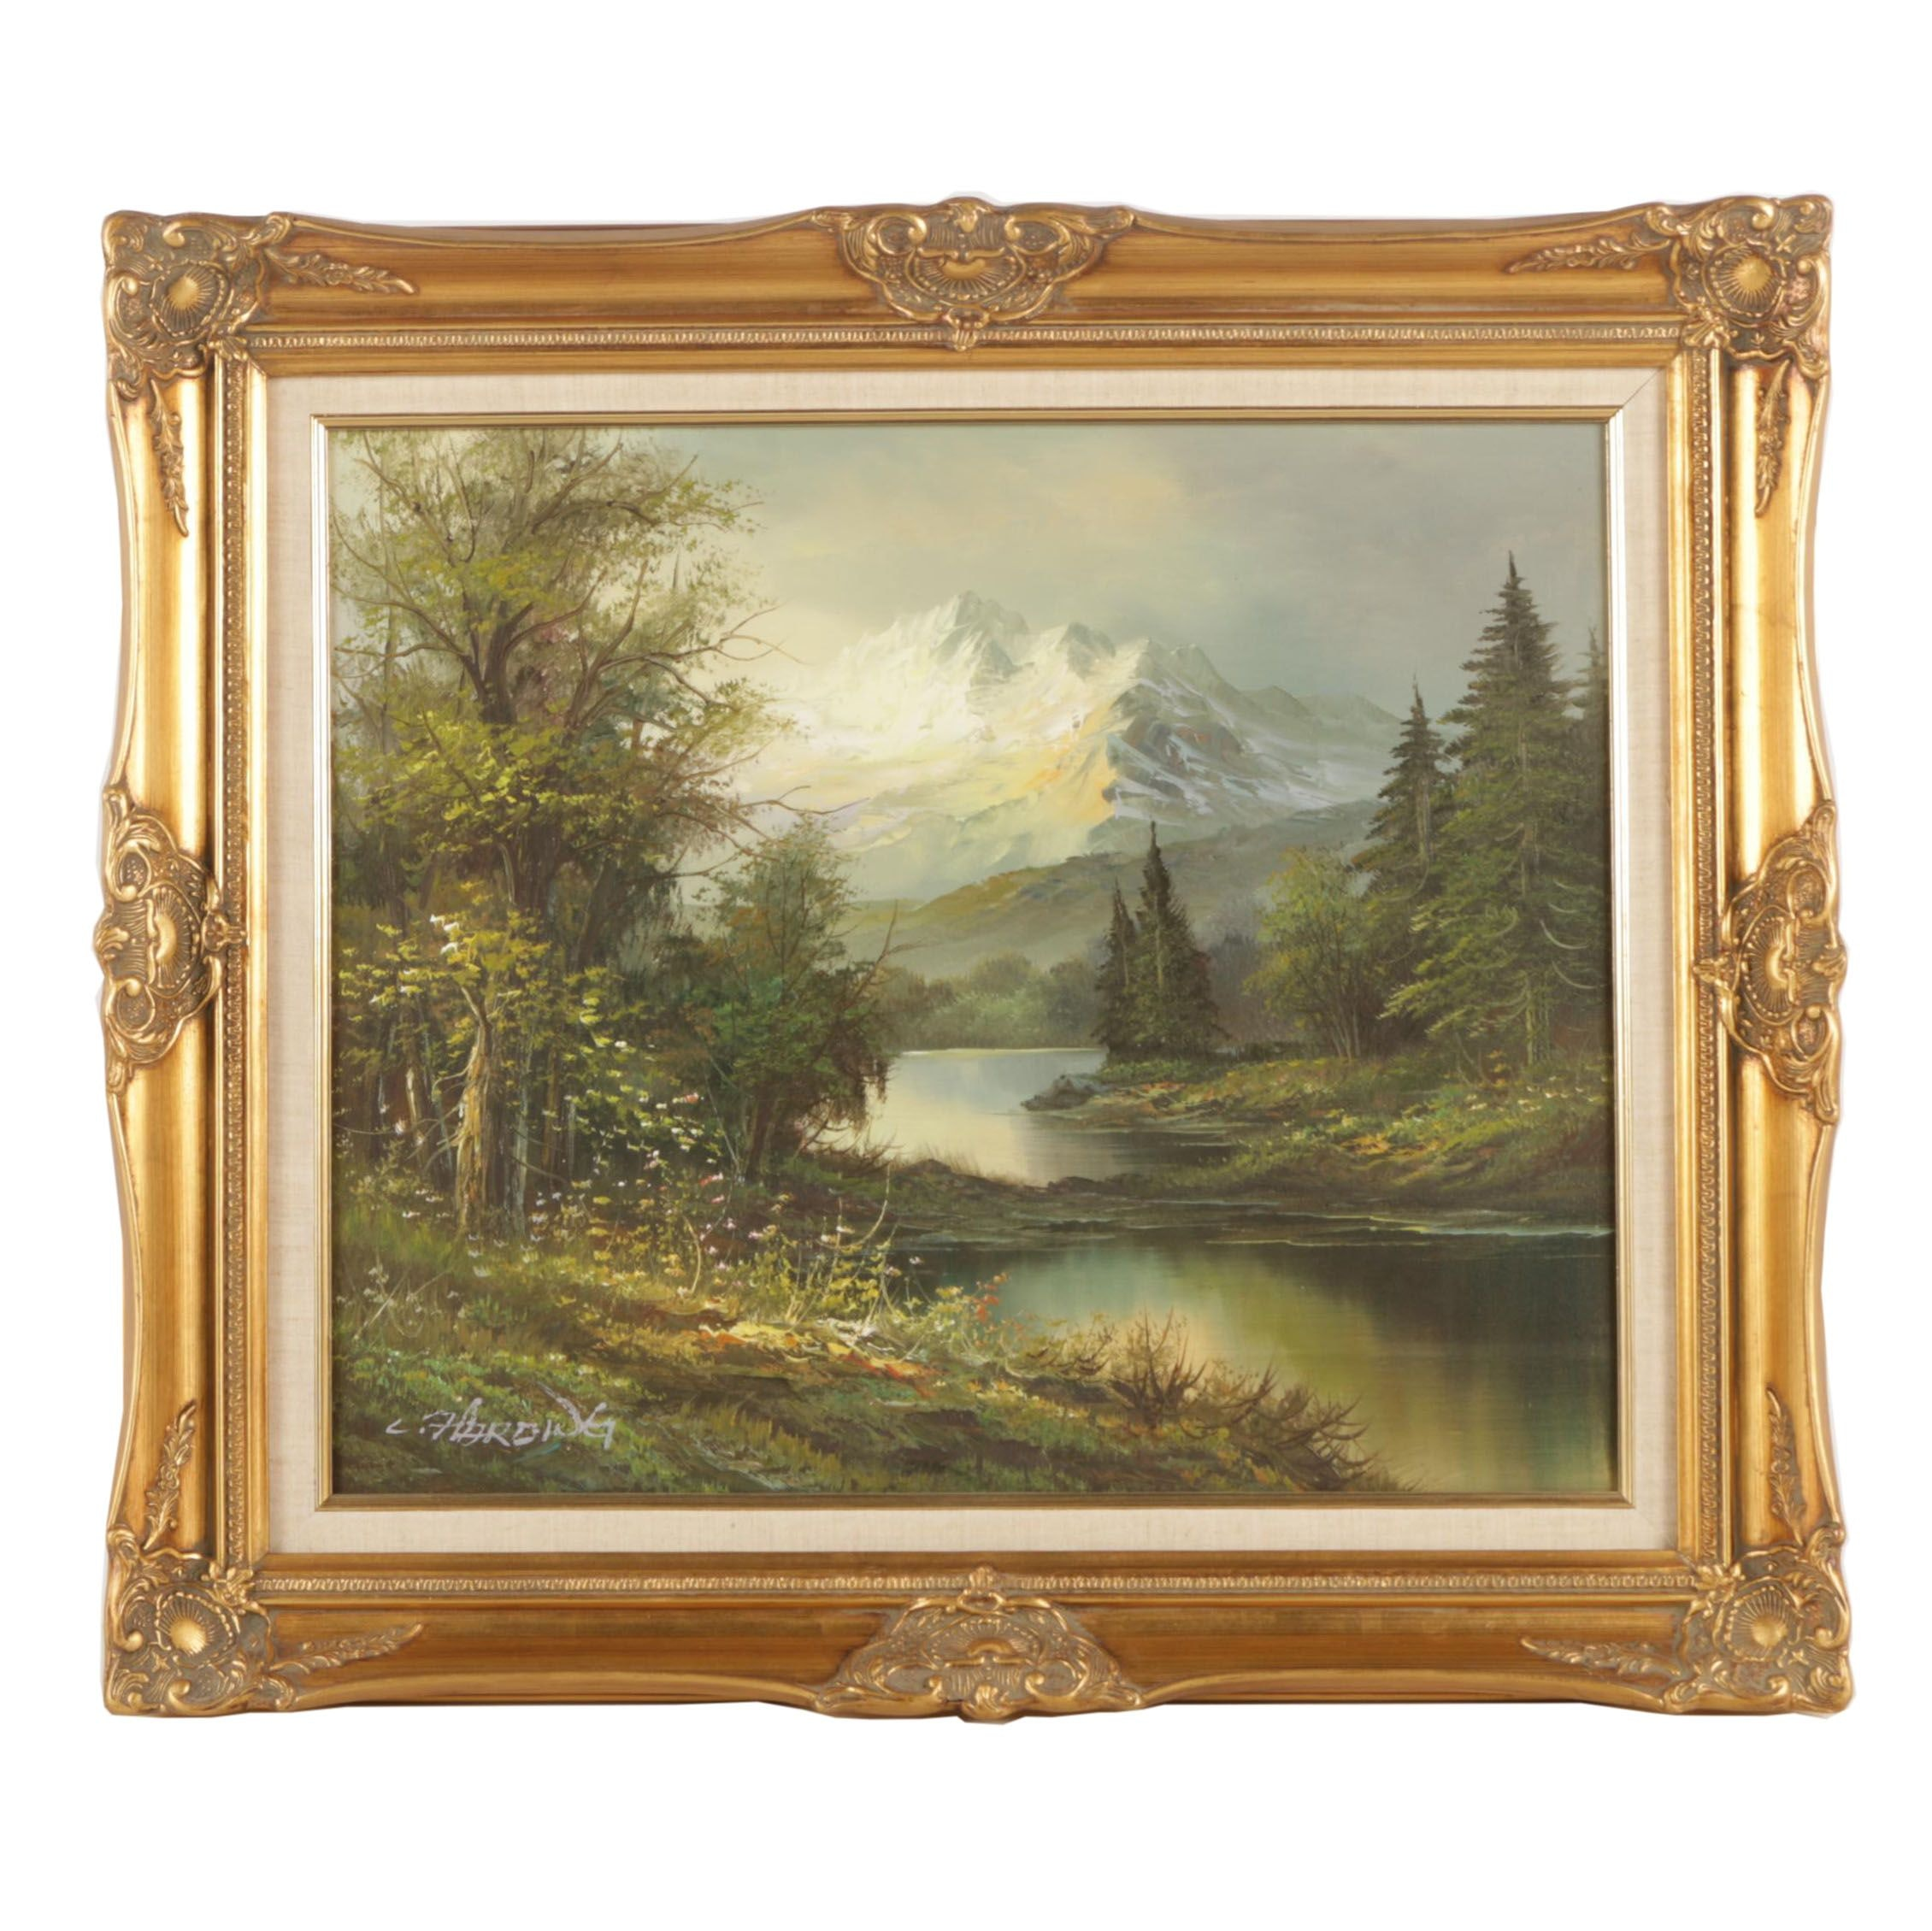 C. Harding Oil Painting on Canvas of River in Mountain Landscape